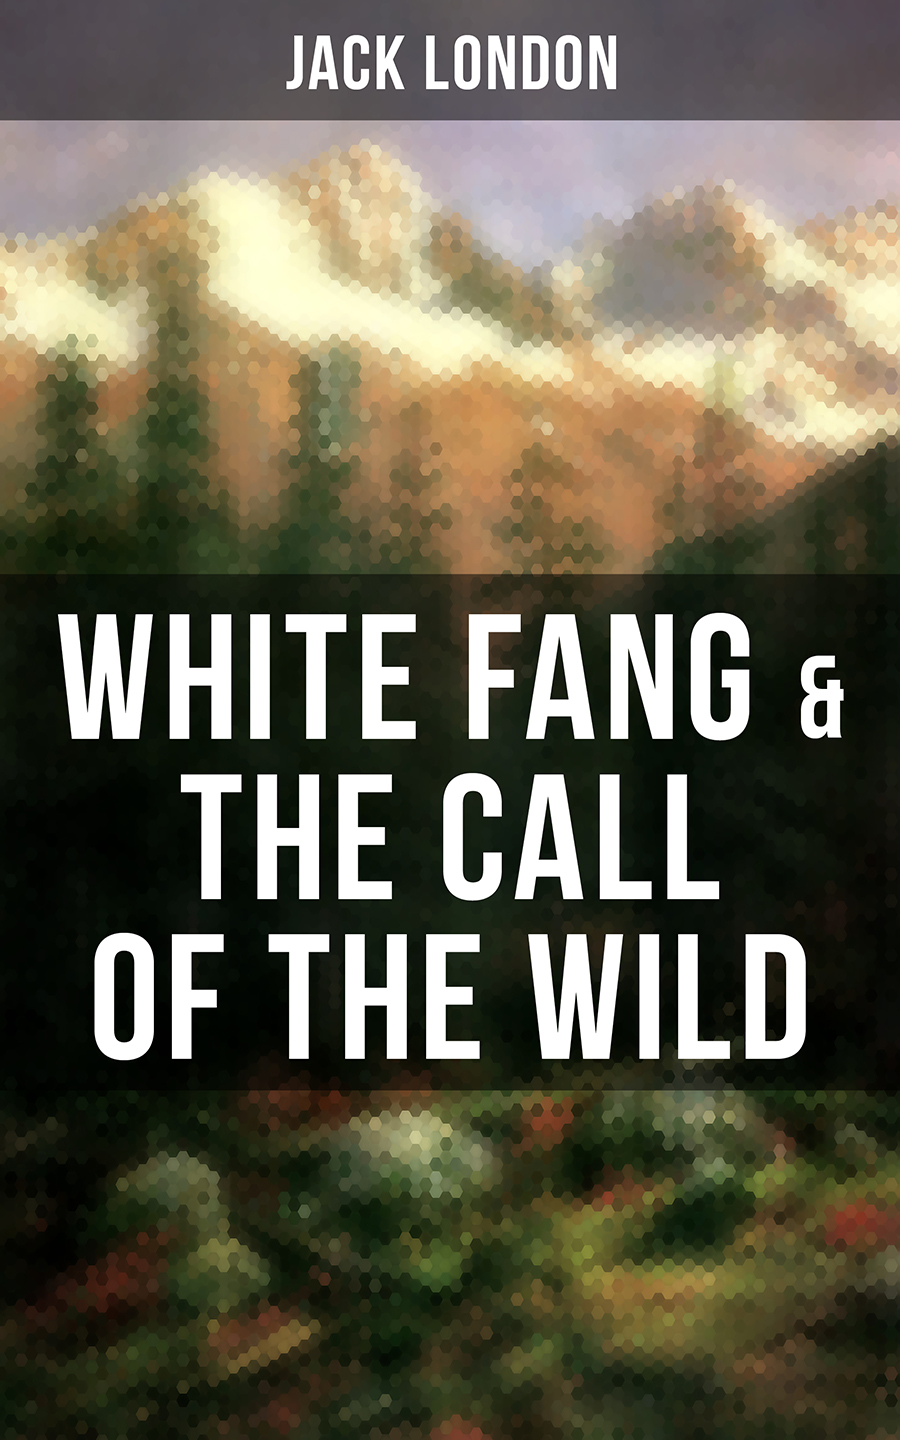 Jack London White Fang & The Call of the Wild london j the call of the wild and white fang мsignet classics london